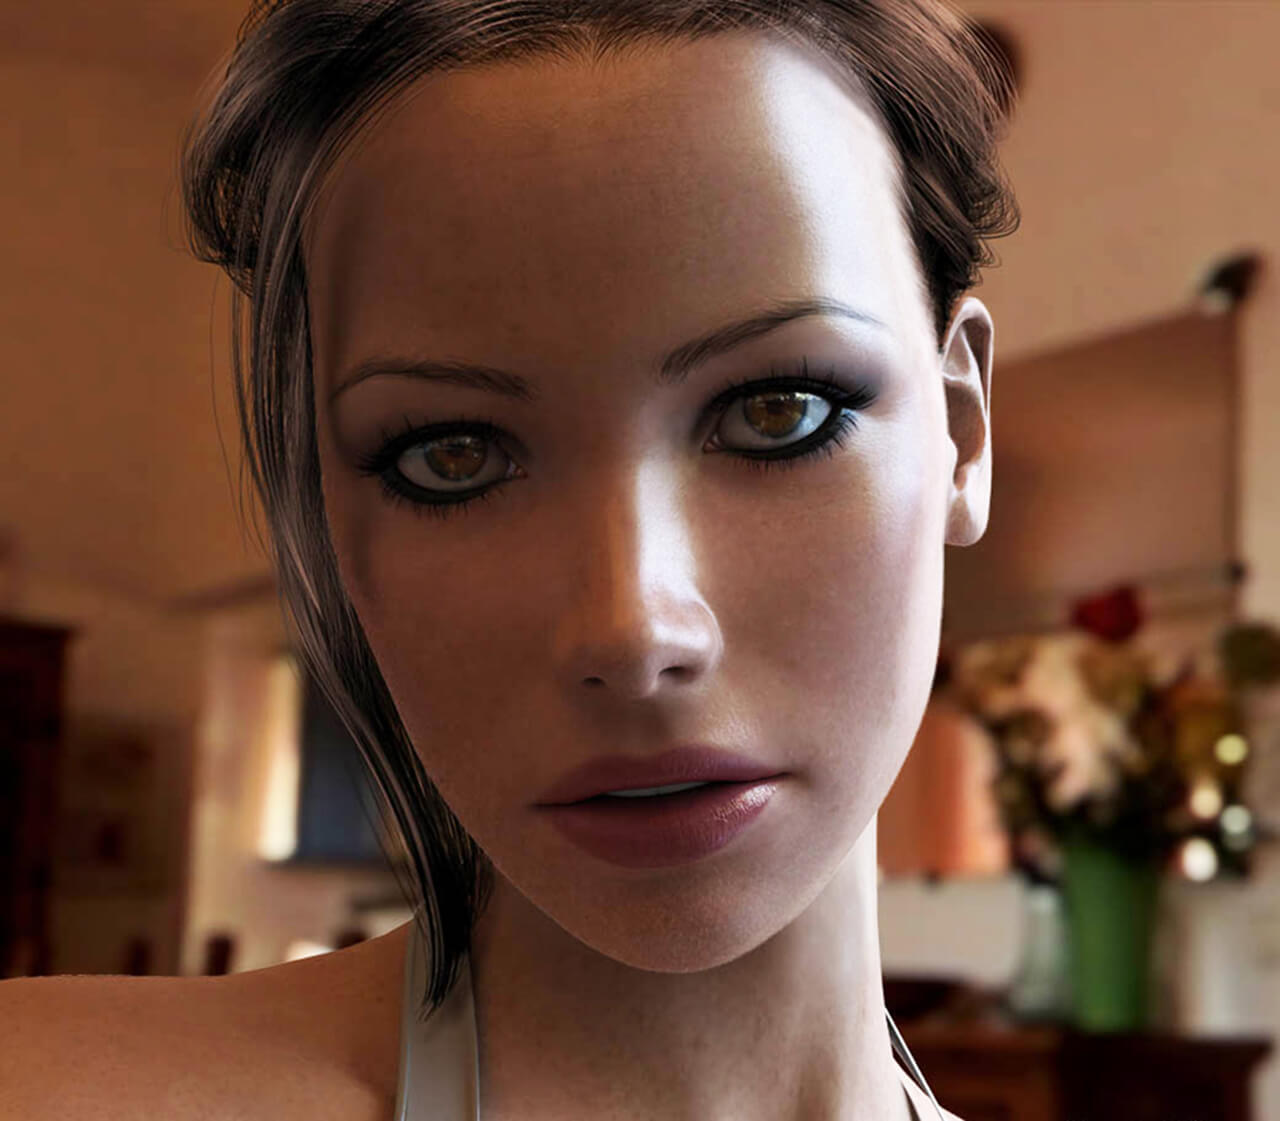 Computer generated image of girls face